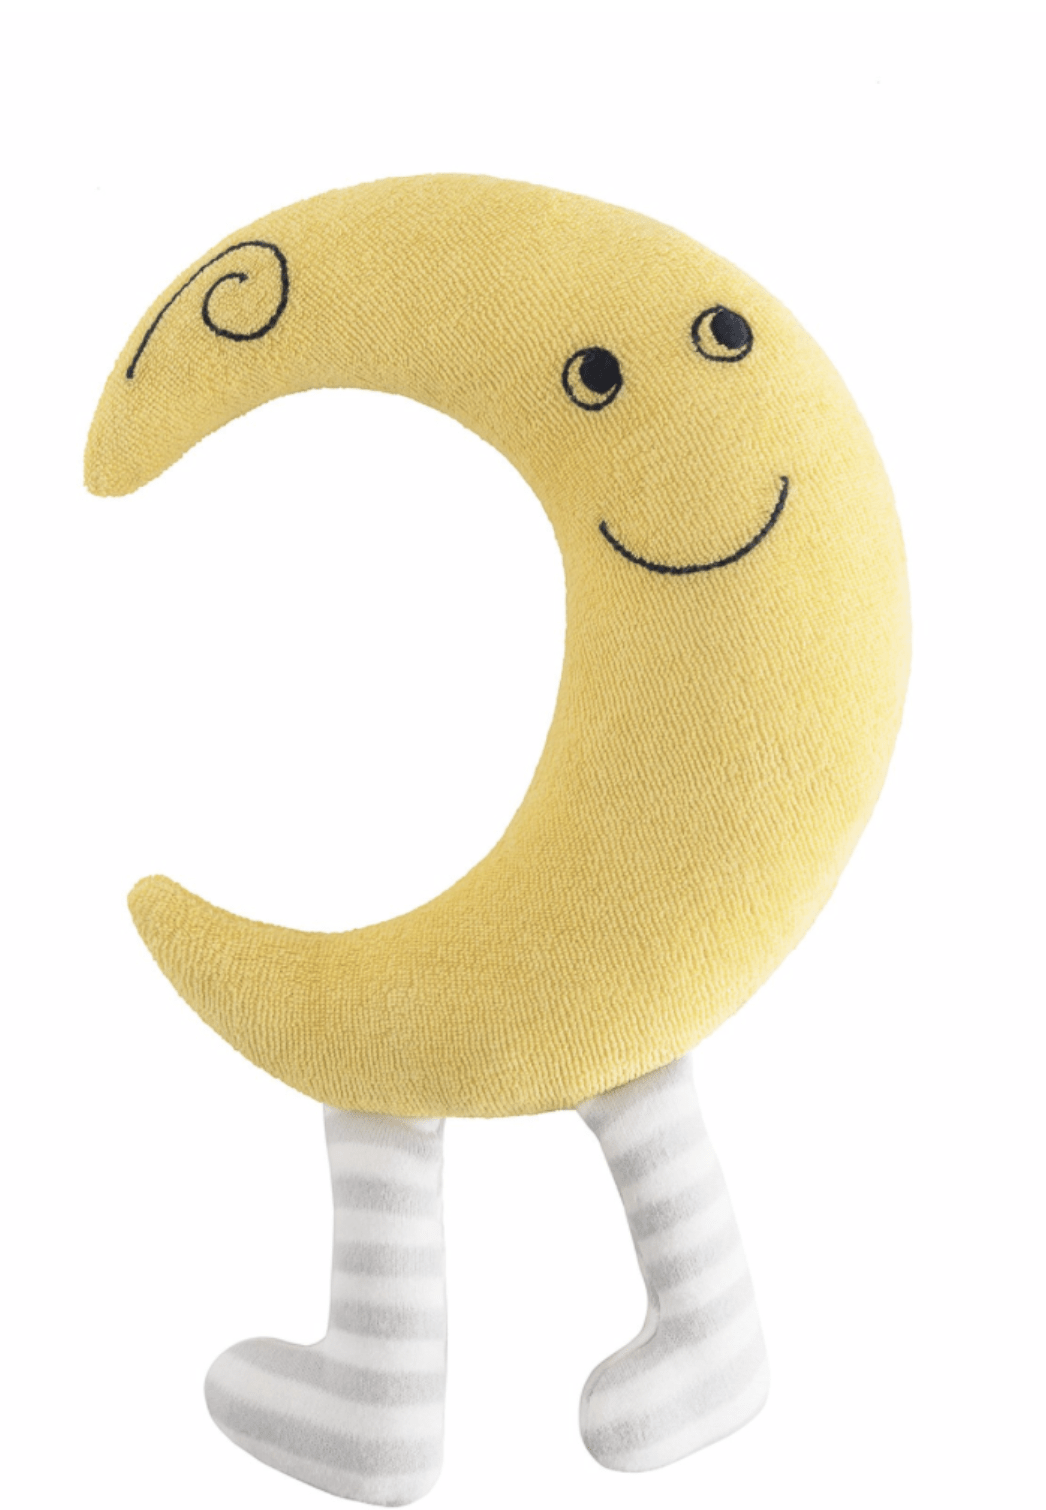 Crissy the Crescent Moon Toy - Make Me Yours Toy Studio